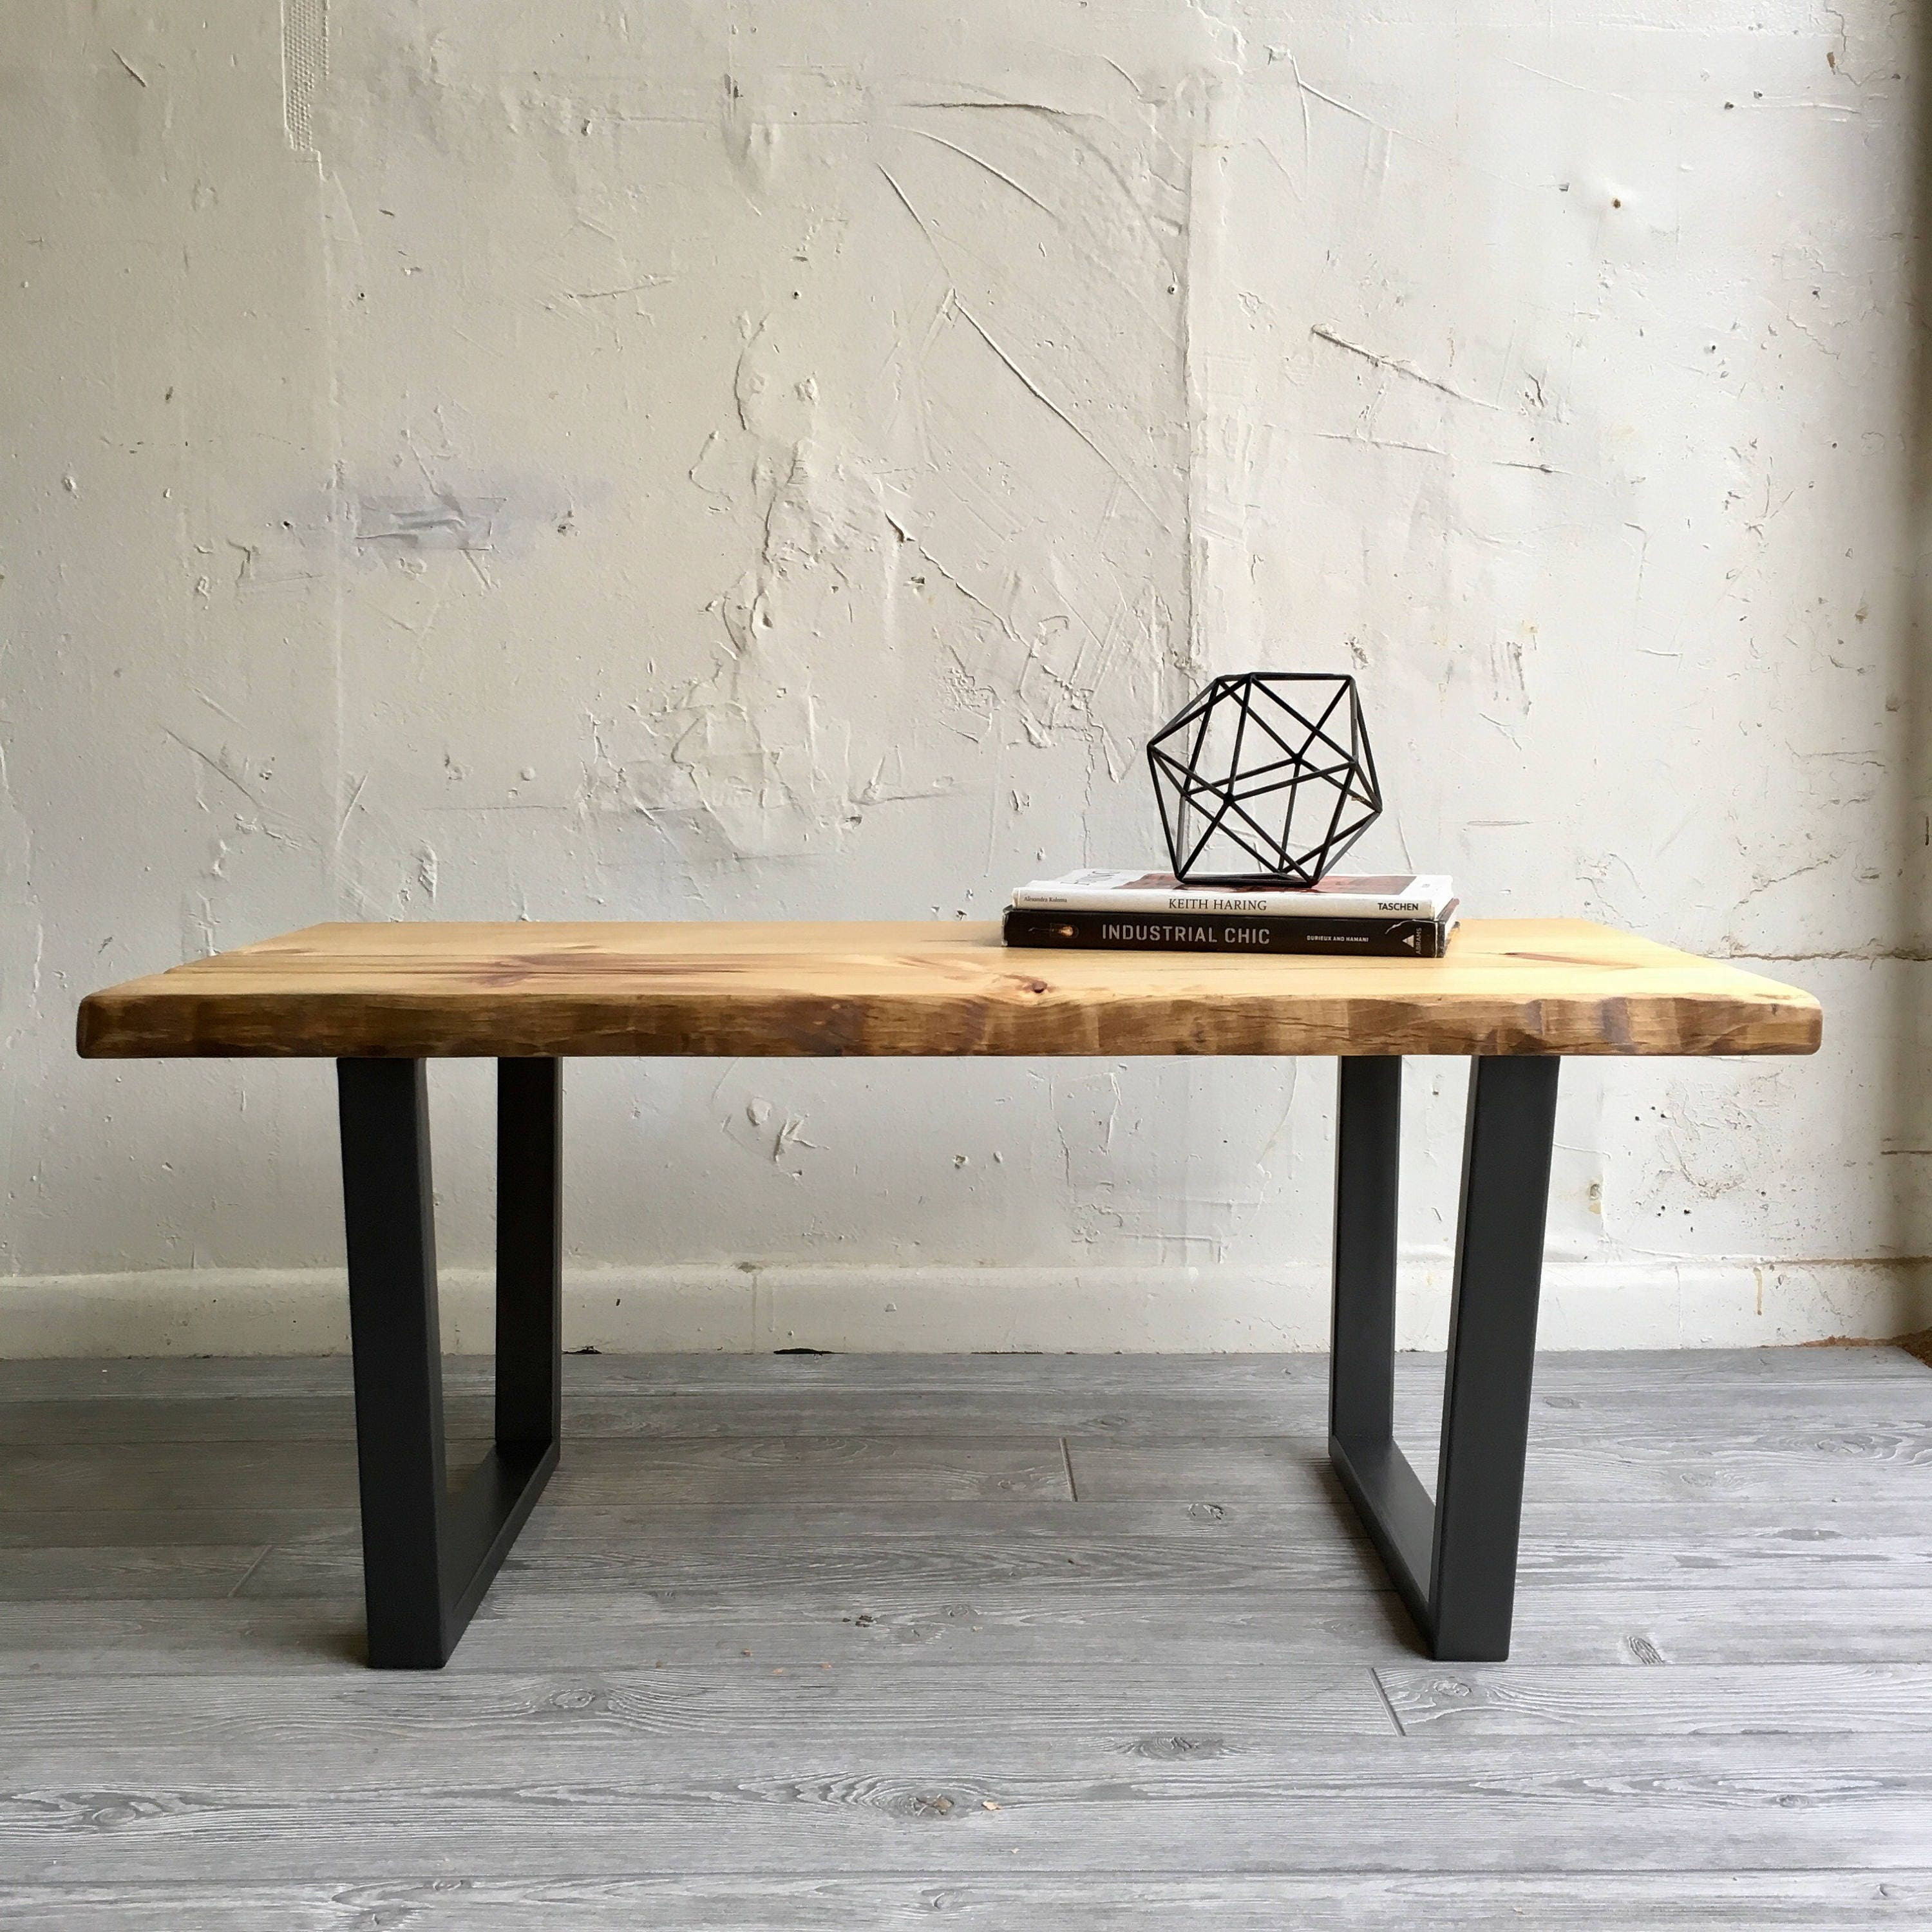 Industrial chic modern coffee table with handcrafted wood top